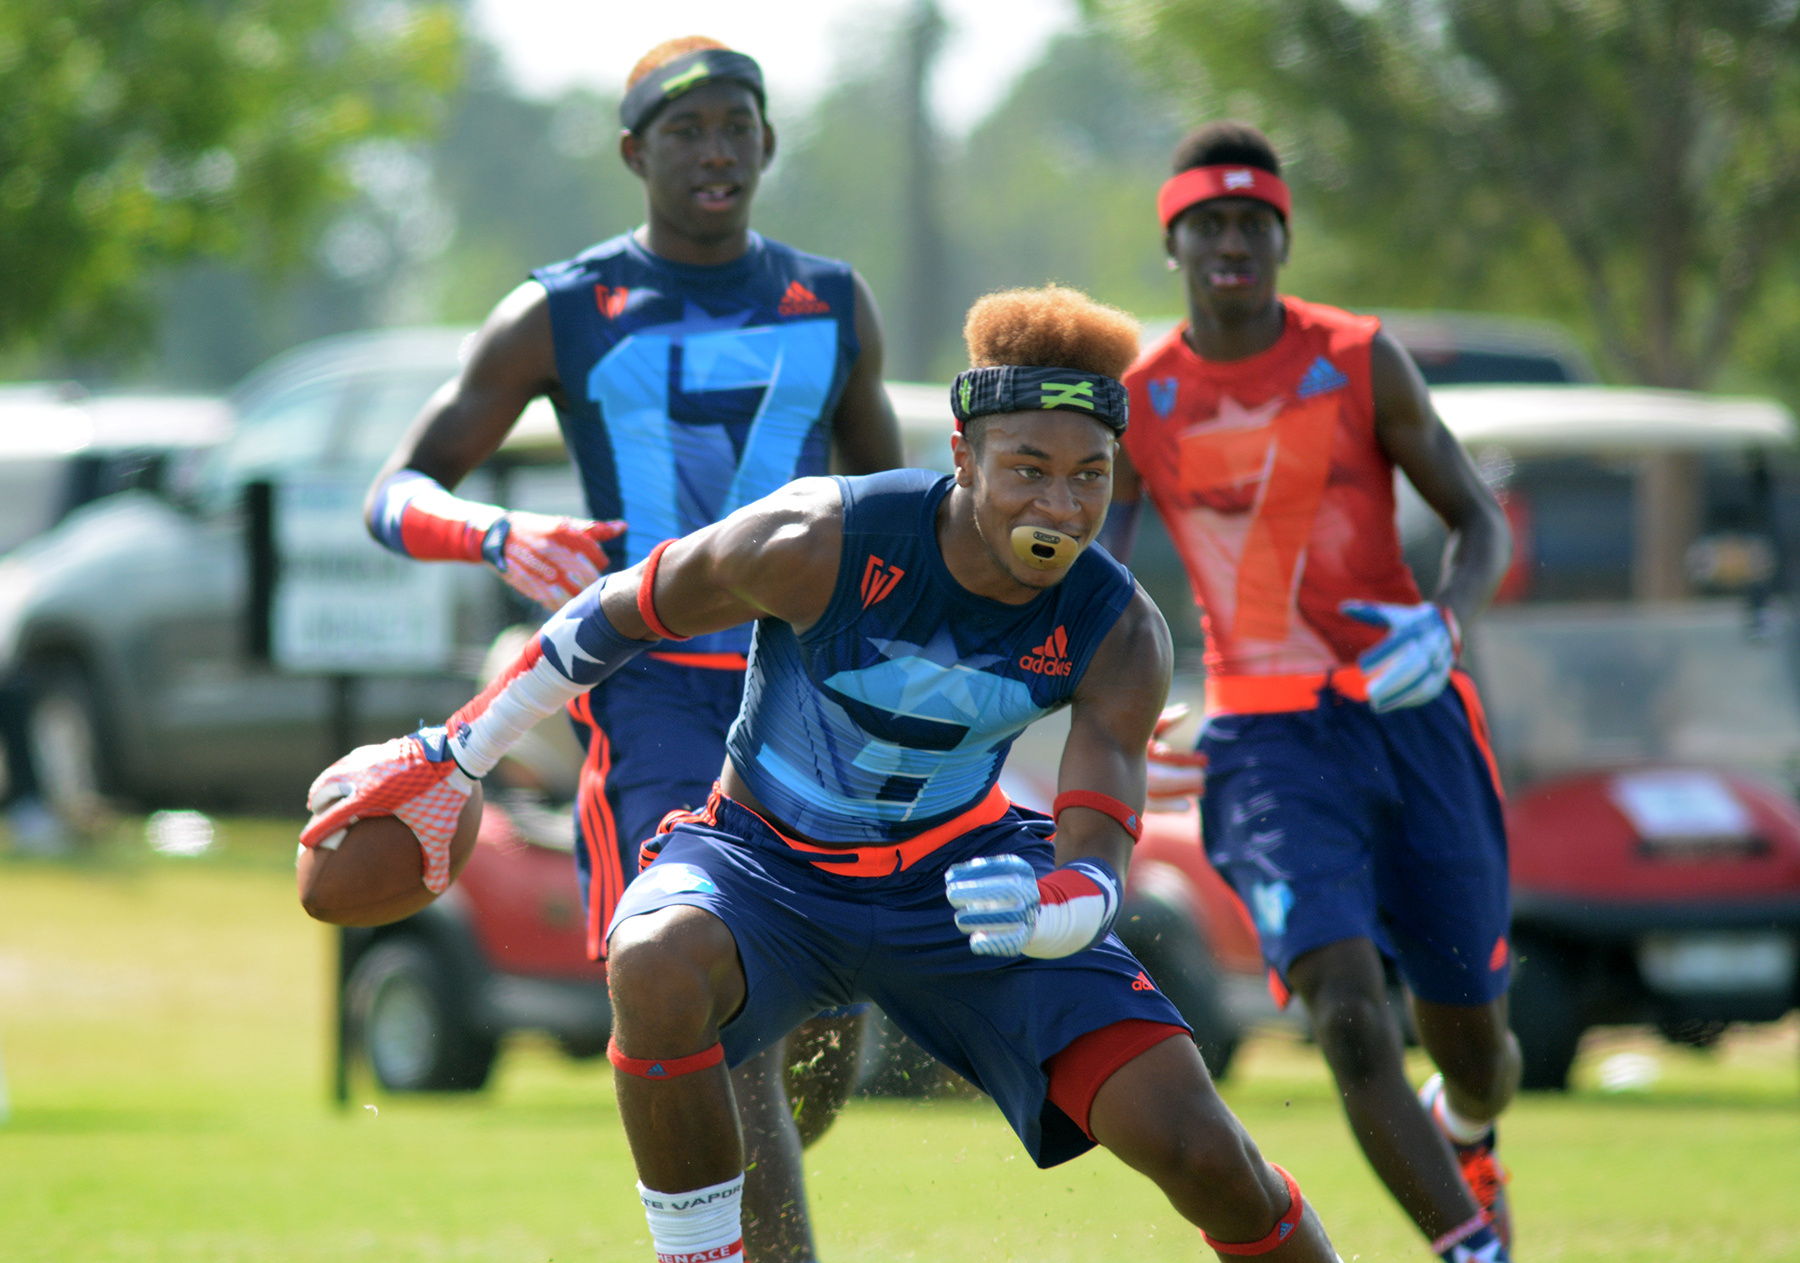 Seven Things To Watch In Texas 7 On 7 Championships